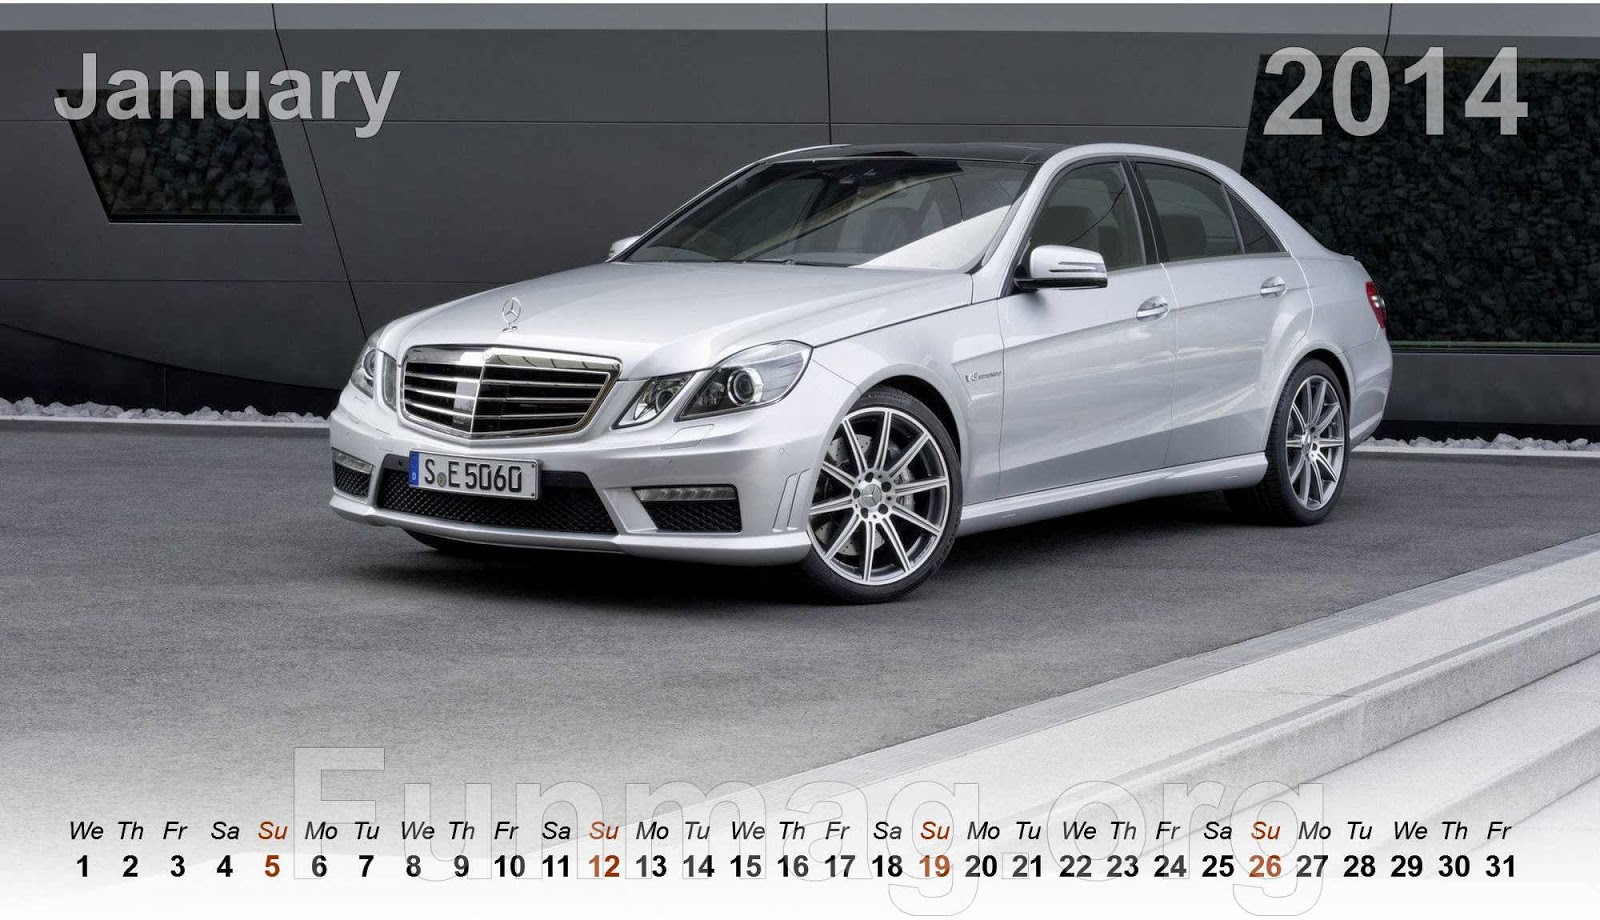 http://www.funmag.org/pictures-mag/calendar/cars-calendar-2014/